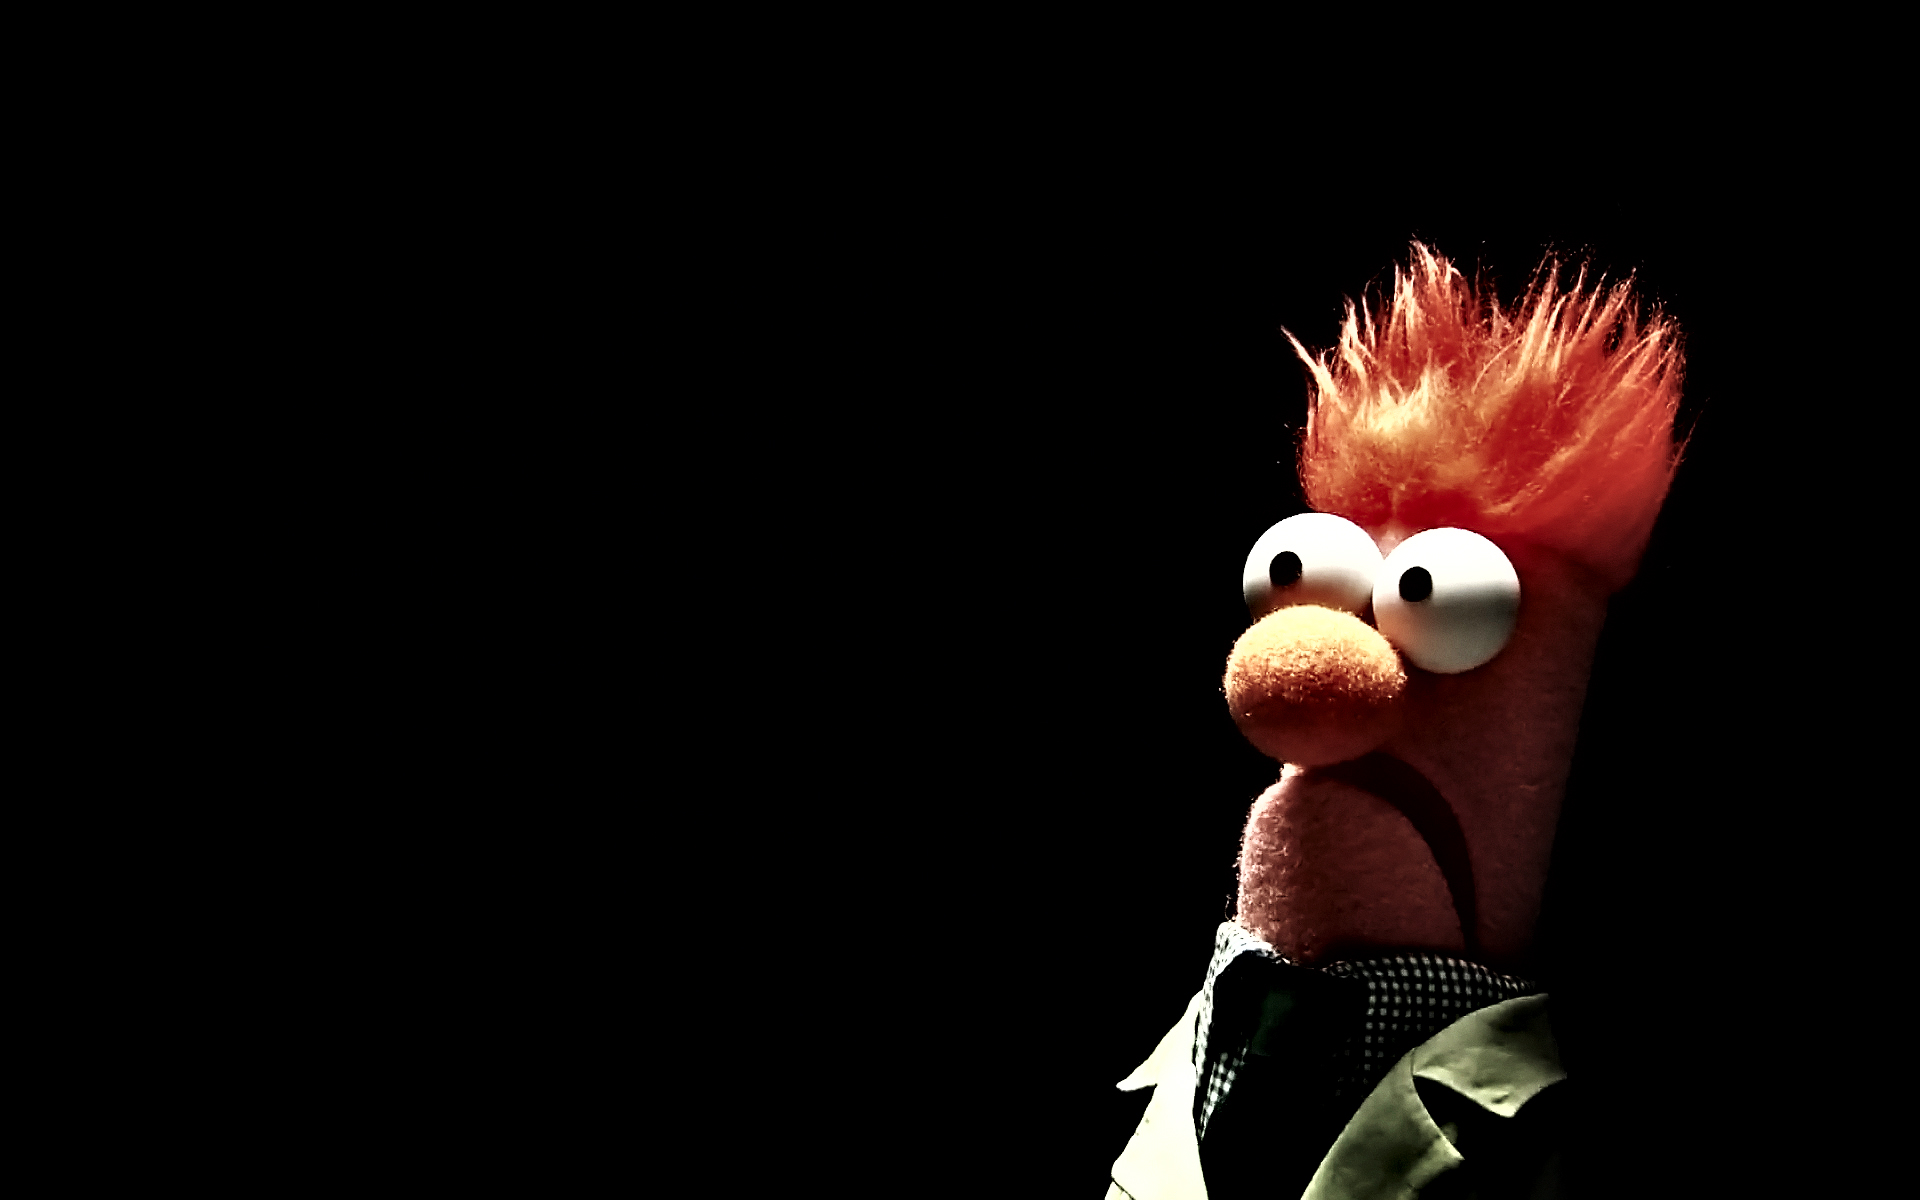 Beaker from Muppets Wallpaper - WallpaperSafari